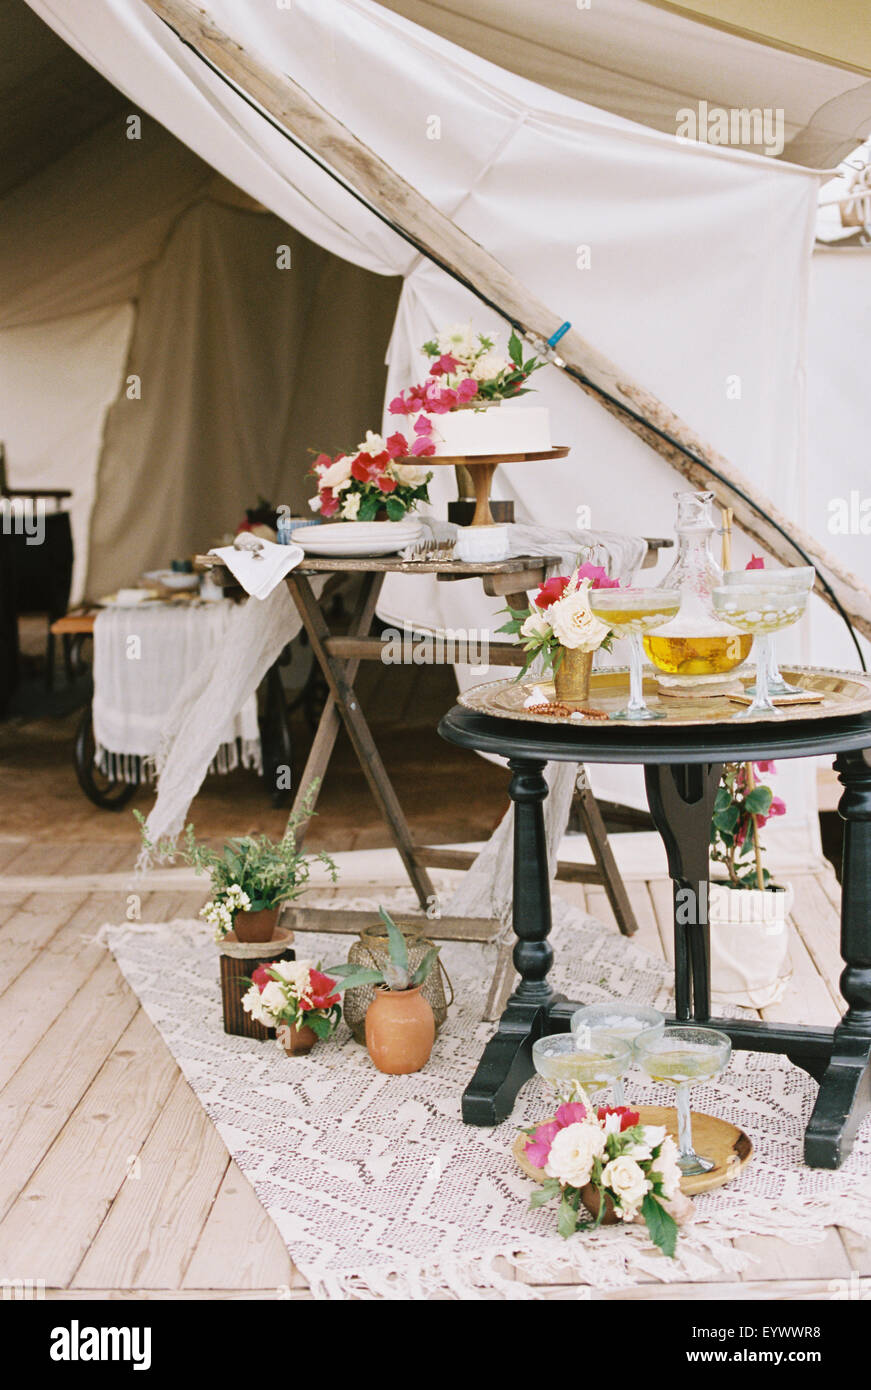 Food and drink on tables outside tent in a desert. - Stock Image